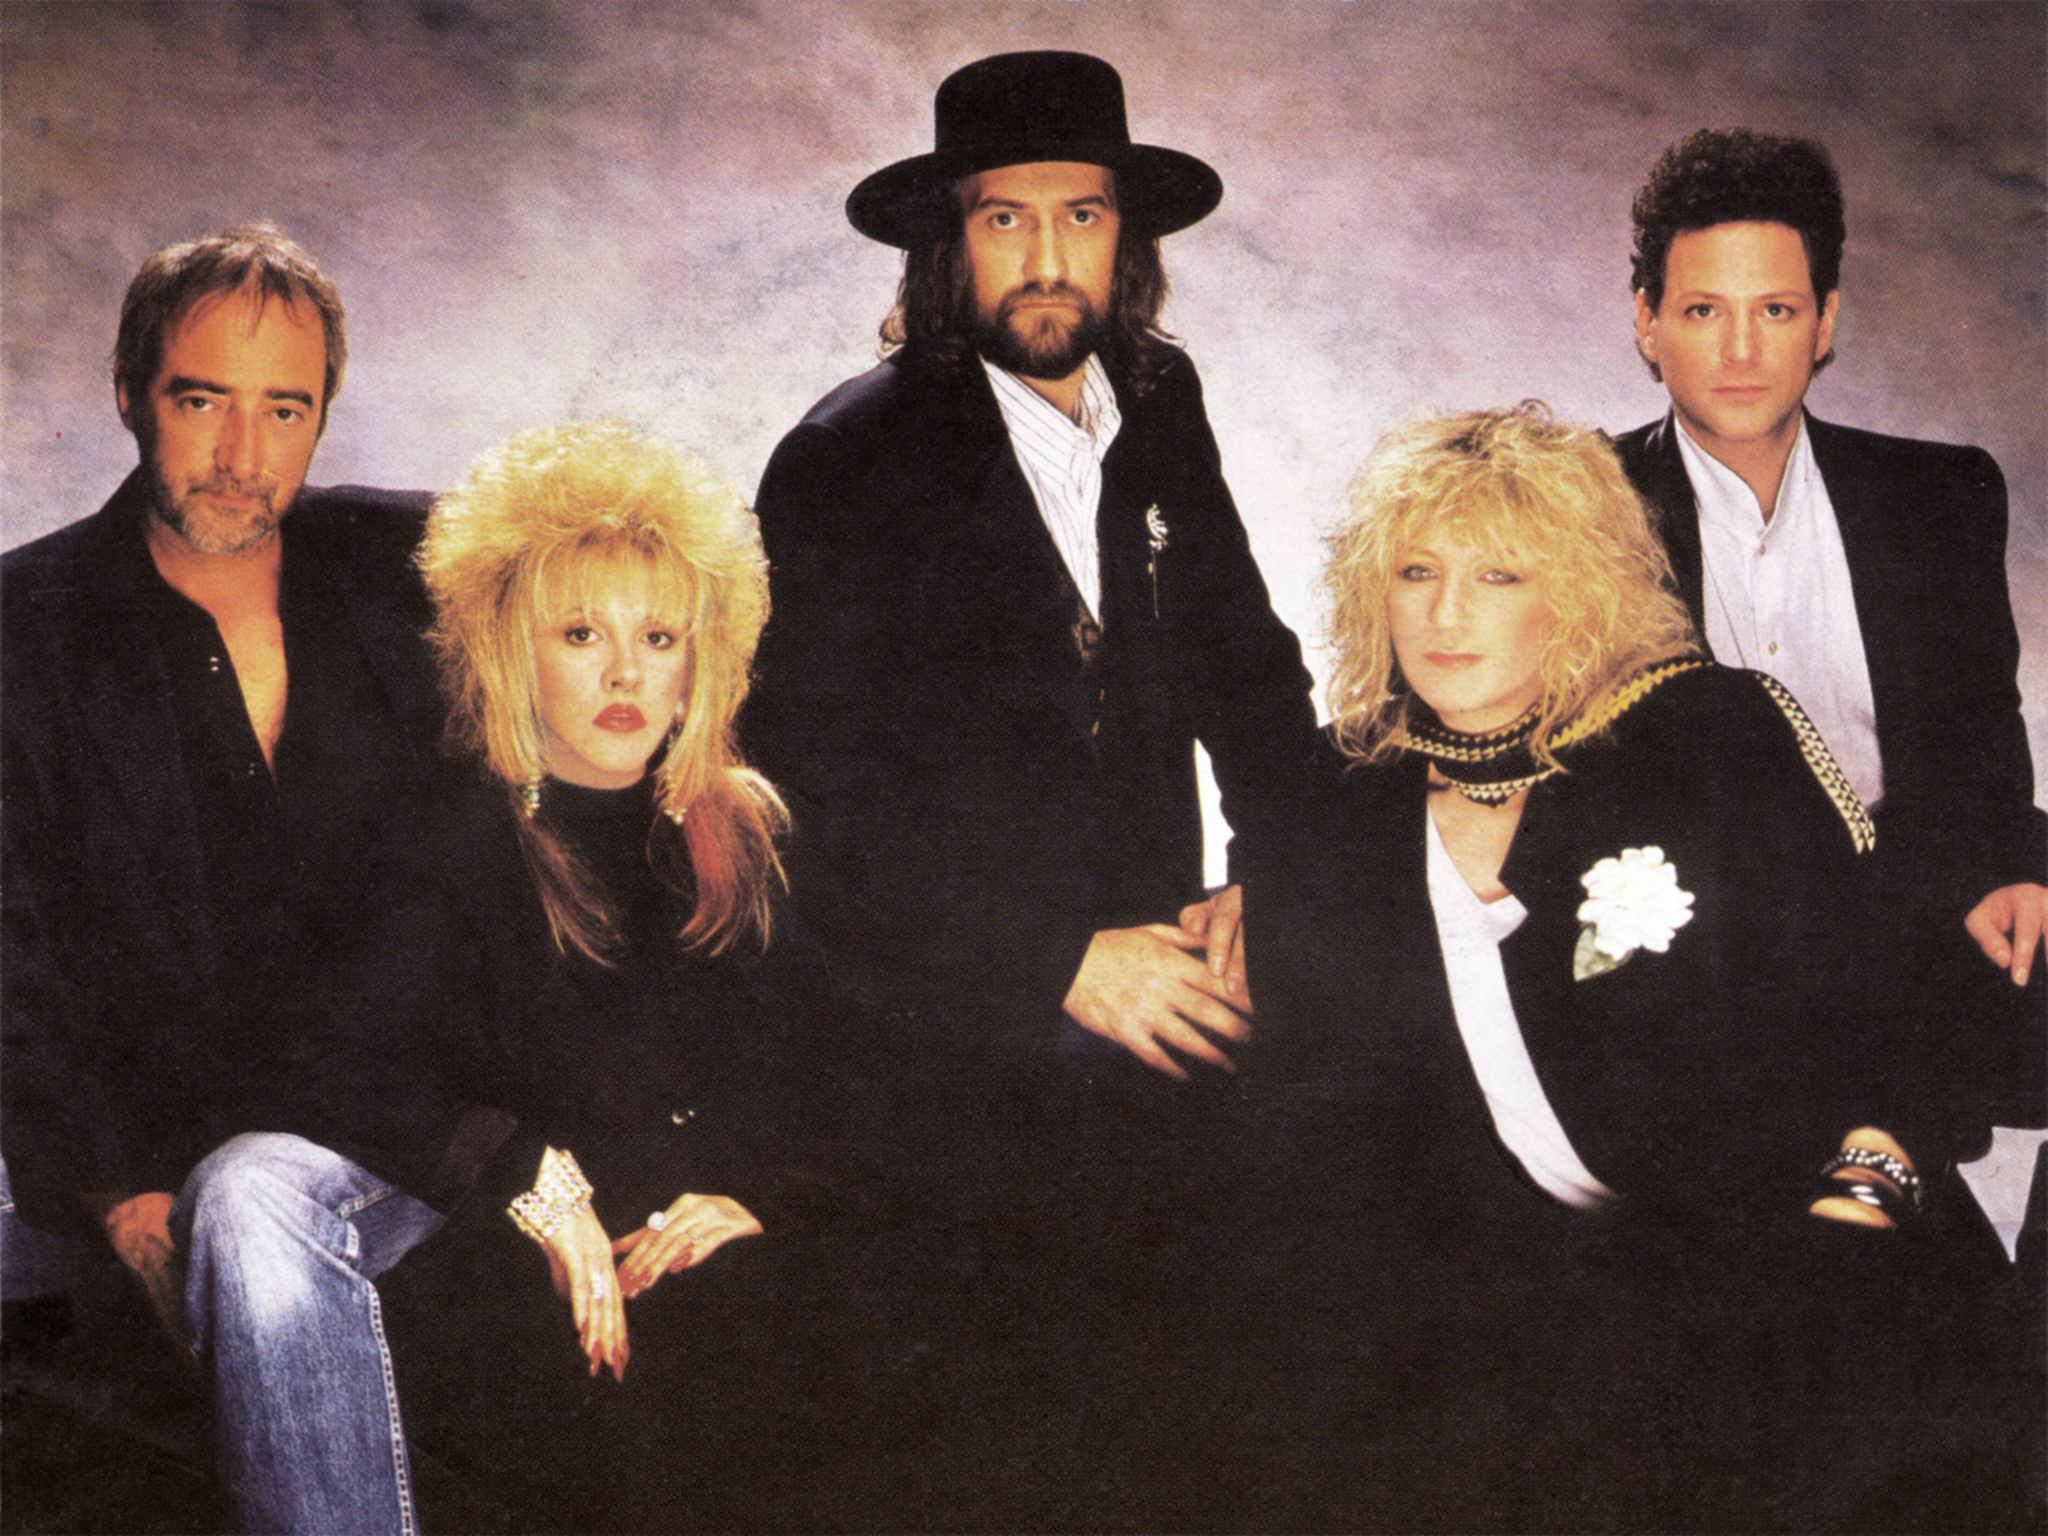 'Everywhere' – Fleetwood Mac